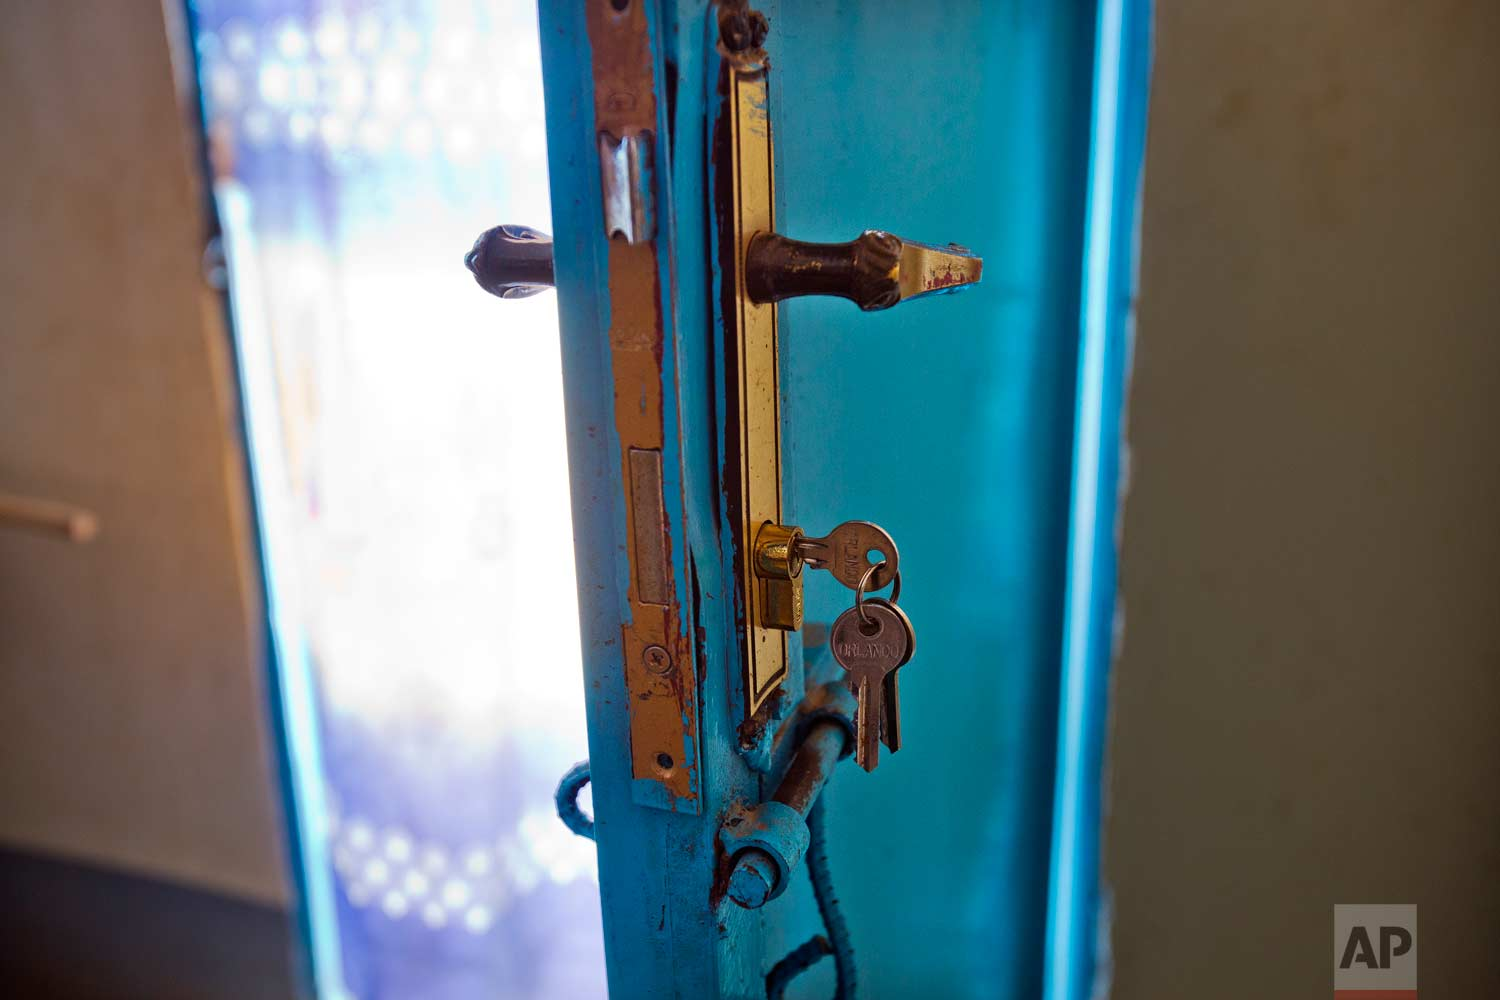 A set of keys hangs from a door lock inside the Masaidizi Health Center in Lubumbashi, Democratic Republic of the Congo on Tuesday, Aug. 14, 2018. An Associated Press investigation focused in Congo's second city, the copper-mining metropolis of Lubumbashi, discovered that of more than 20 hospitals and clinics visited, all but one detain patients unable to pay their bills. The practice is illegal according to the Congolese penal code. (AP Photo/Jerome Delay)